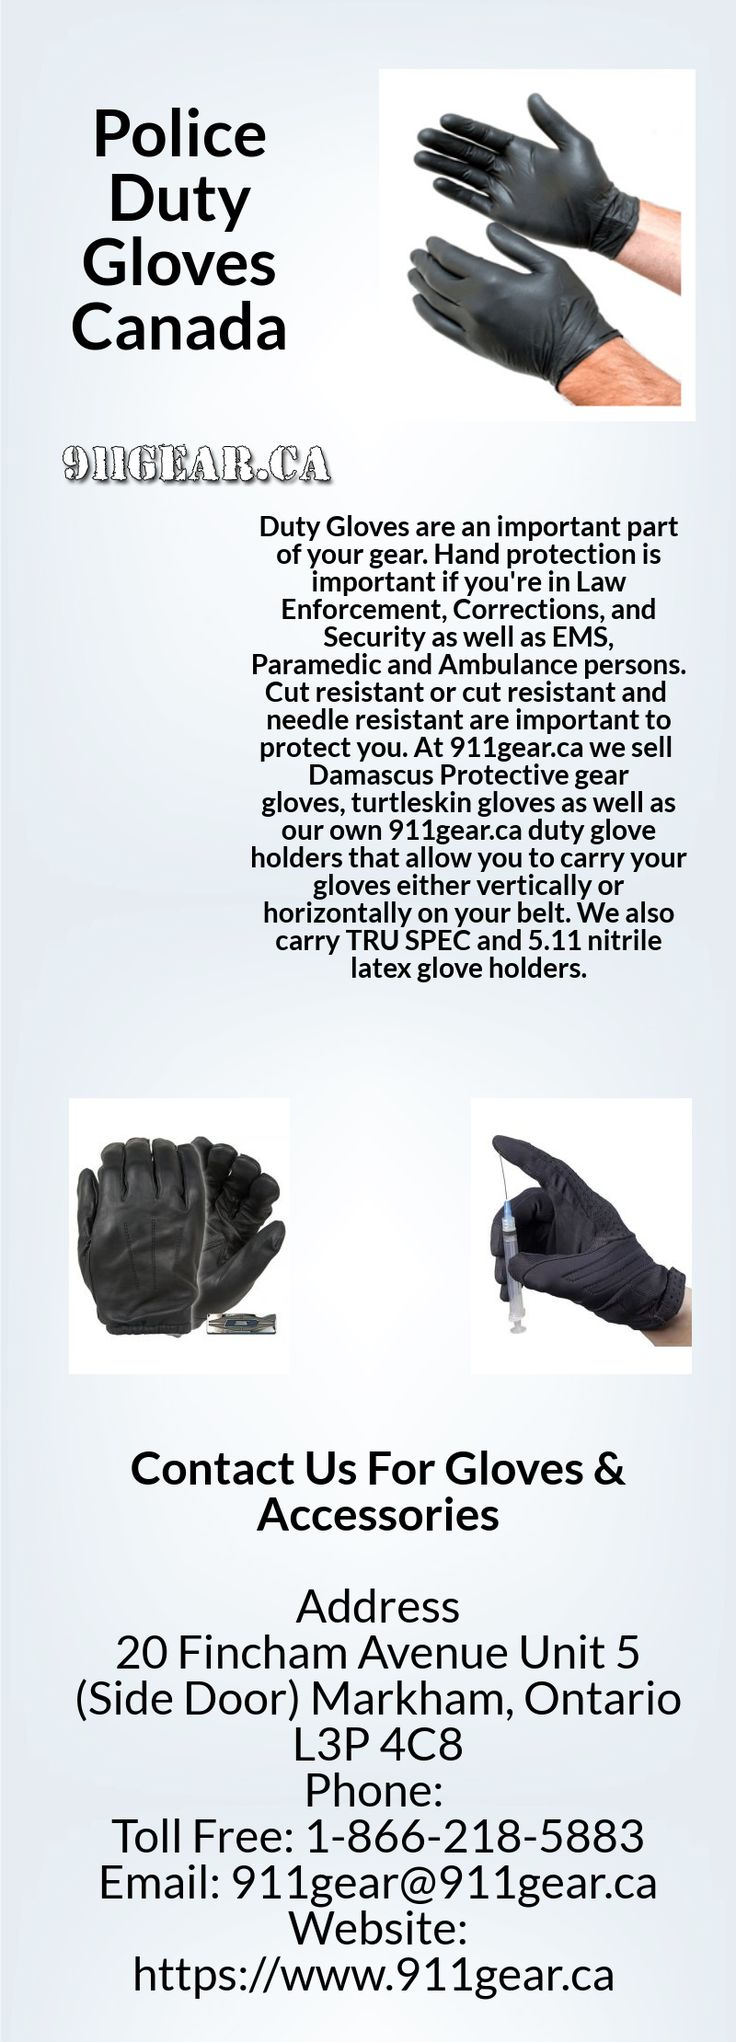 911Gear.ca builds Damascus Protective Law Enforcement Gloves, Police Duty Gloves and tactical gloves for police officers at best prices. Order today! https://www.911gear.ca/gloves-accessories-c-102.html